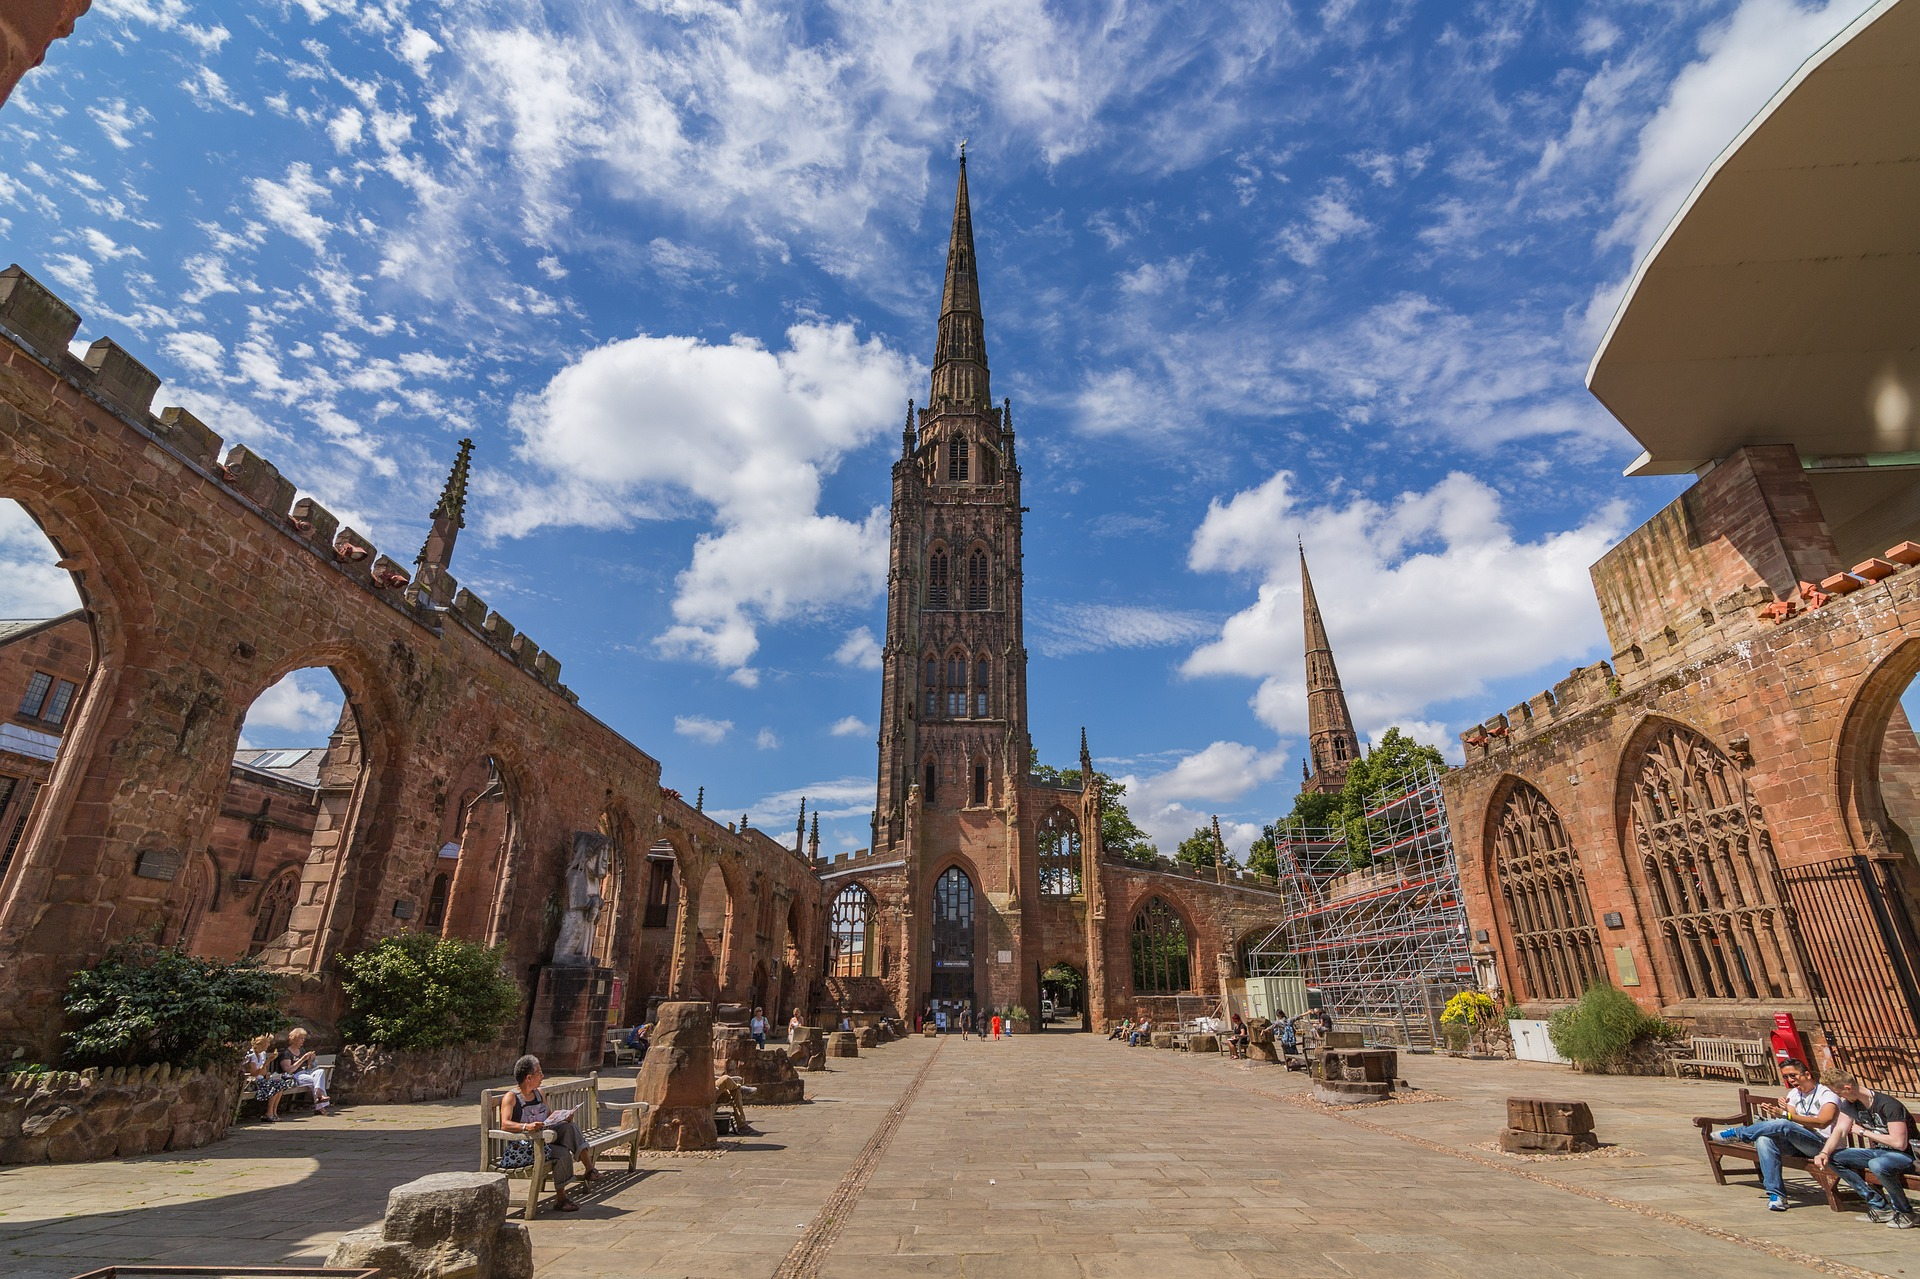 COVENTRY IS ONE OF TH EBEST STUDENT CITIES FOR NIGHT LIFE AND STUDENT ACCOMMODATION